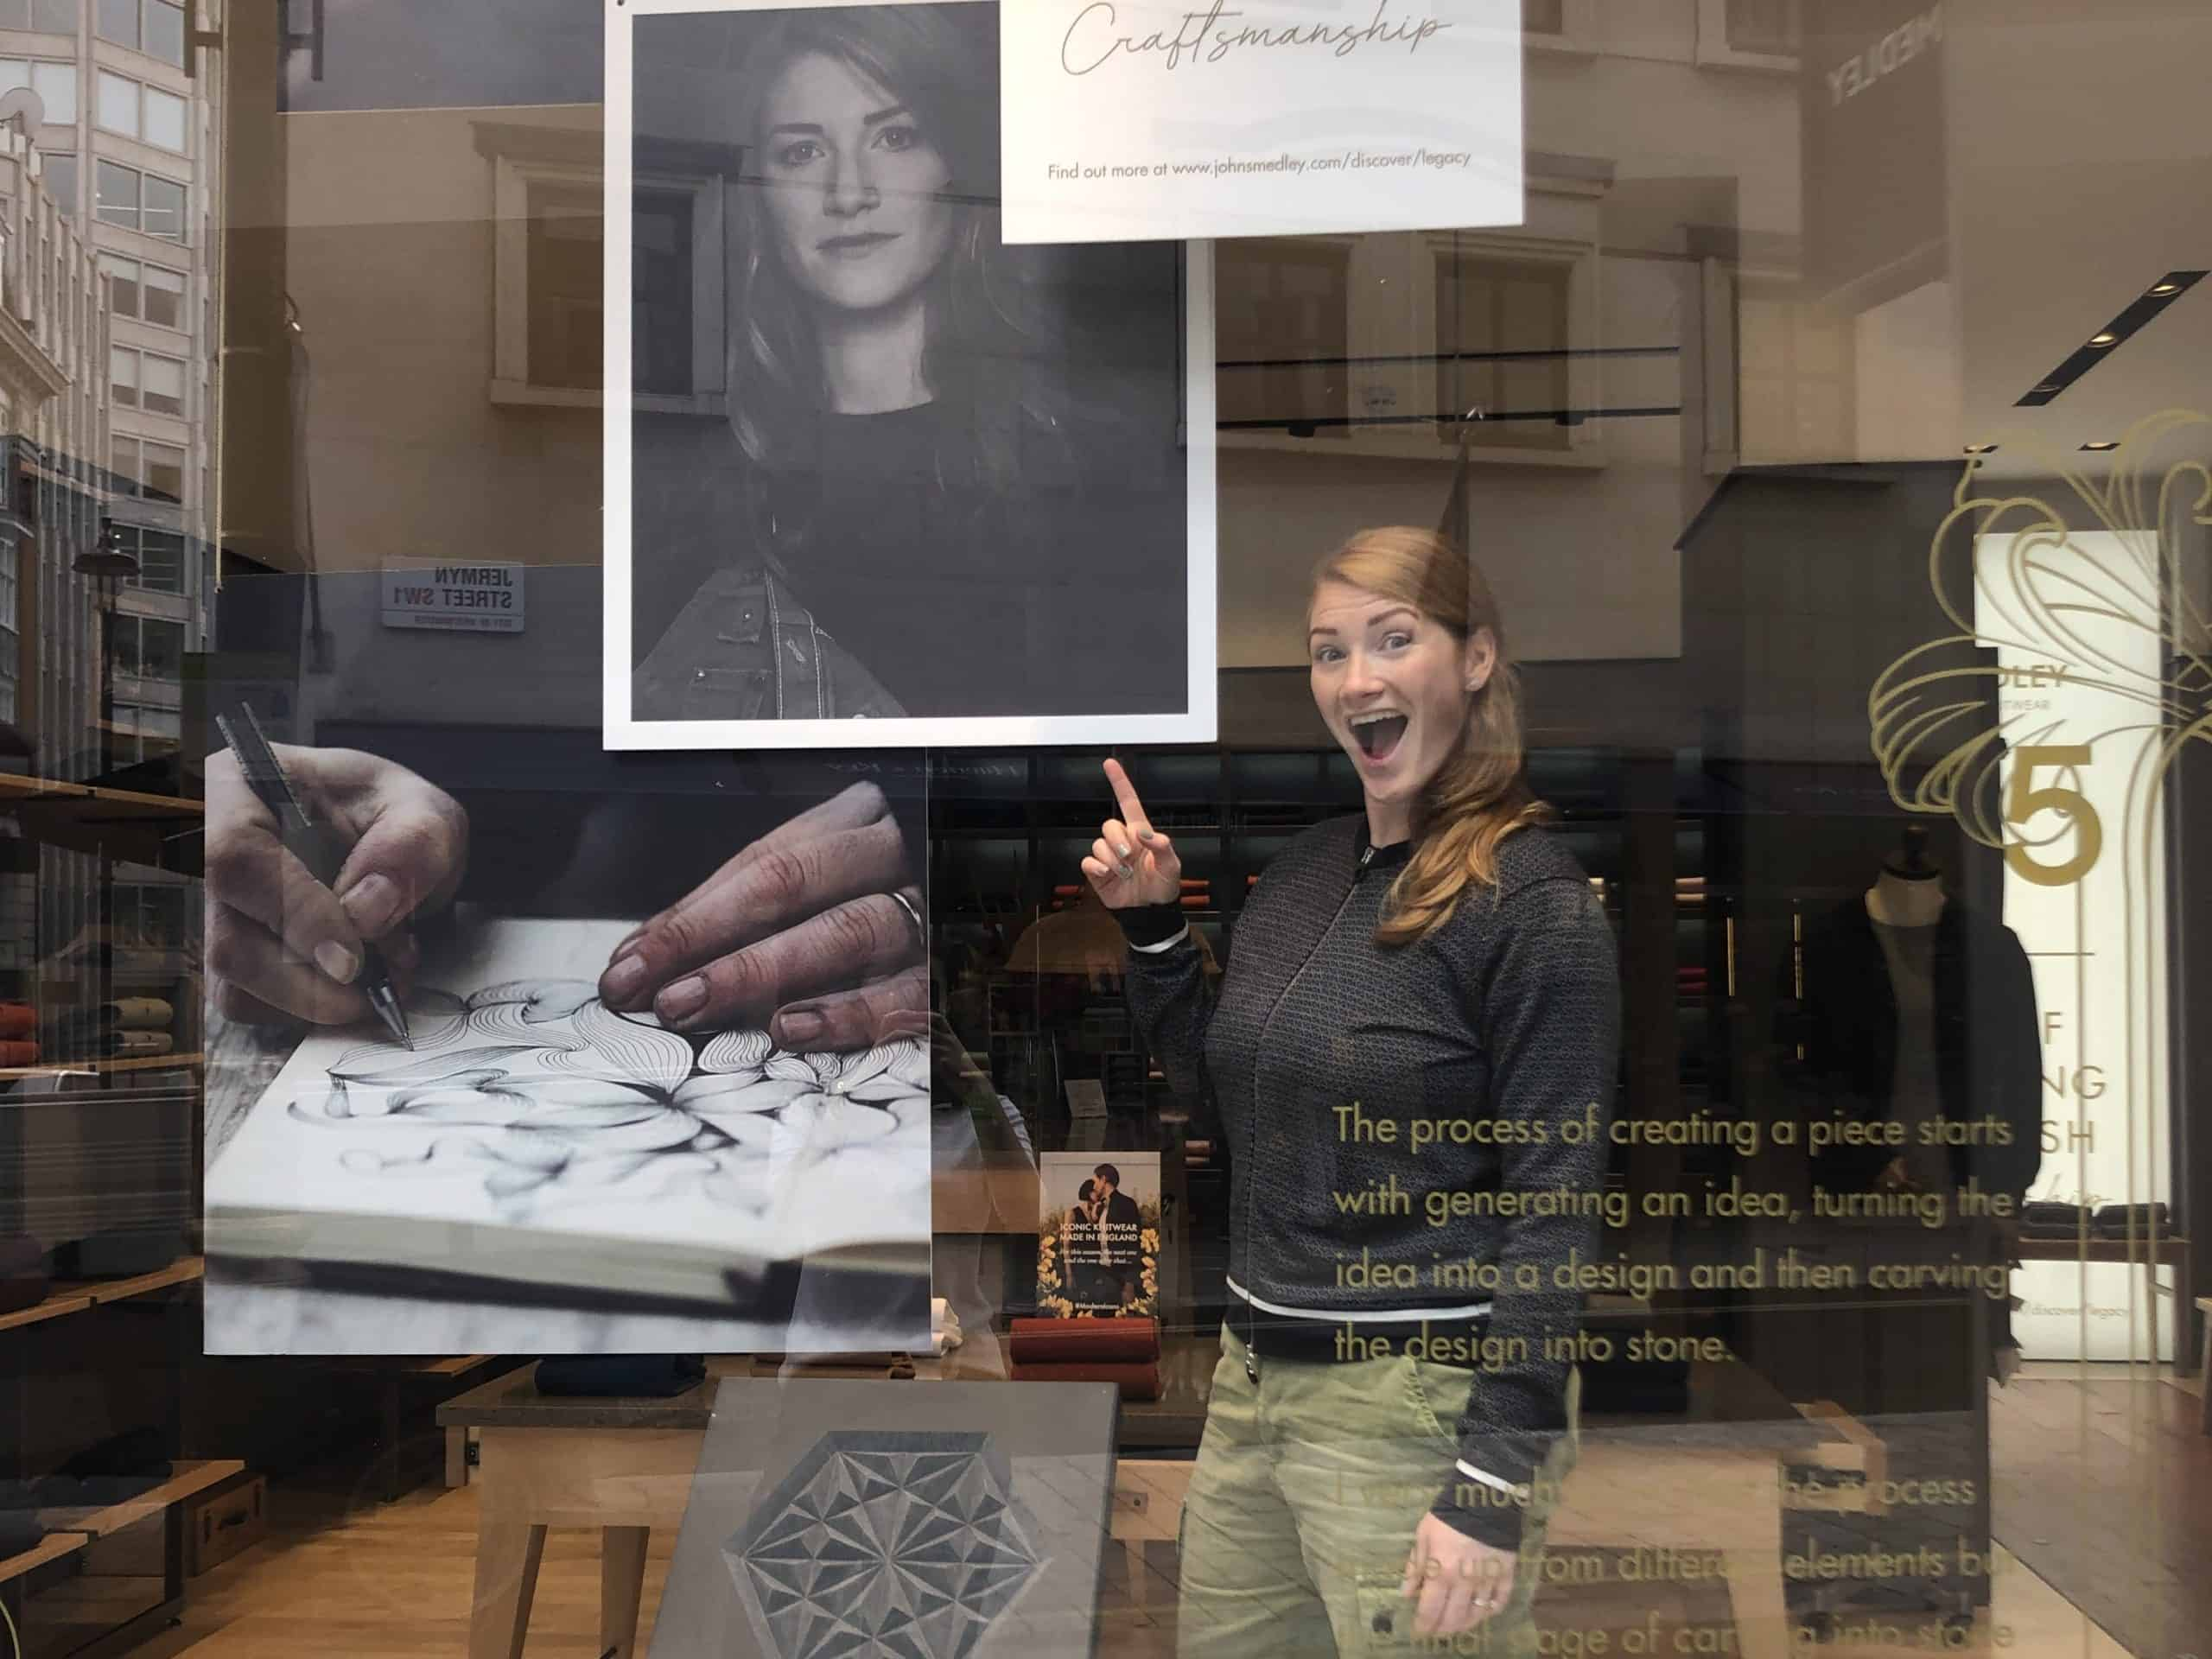 Zoe standing in the window of a John Smedley store in London next to her work.